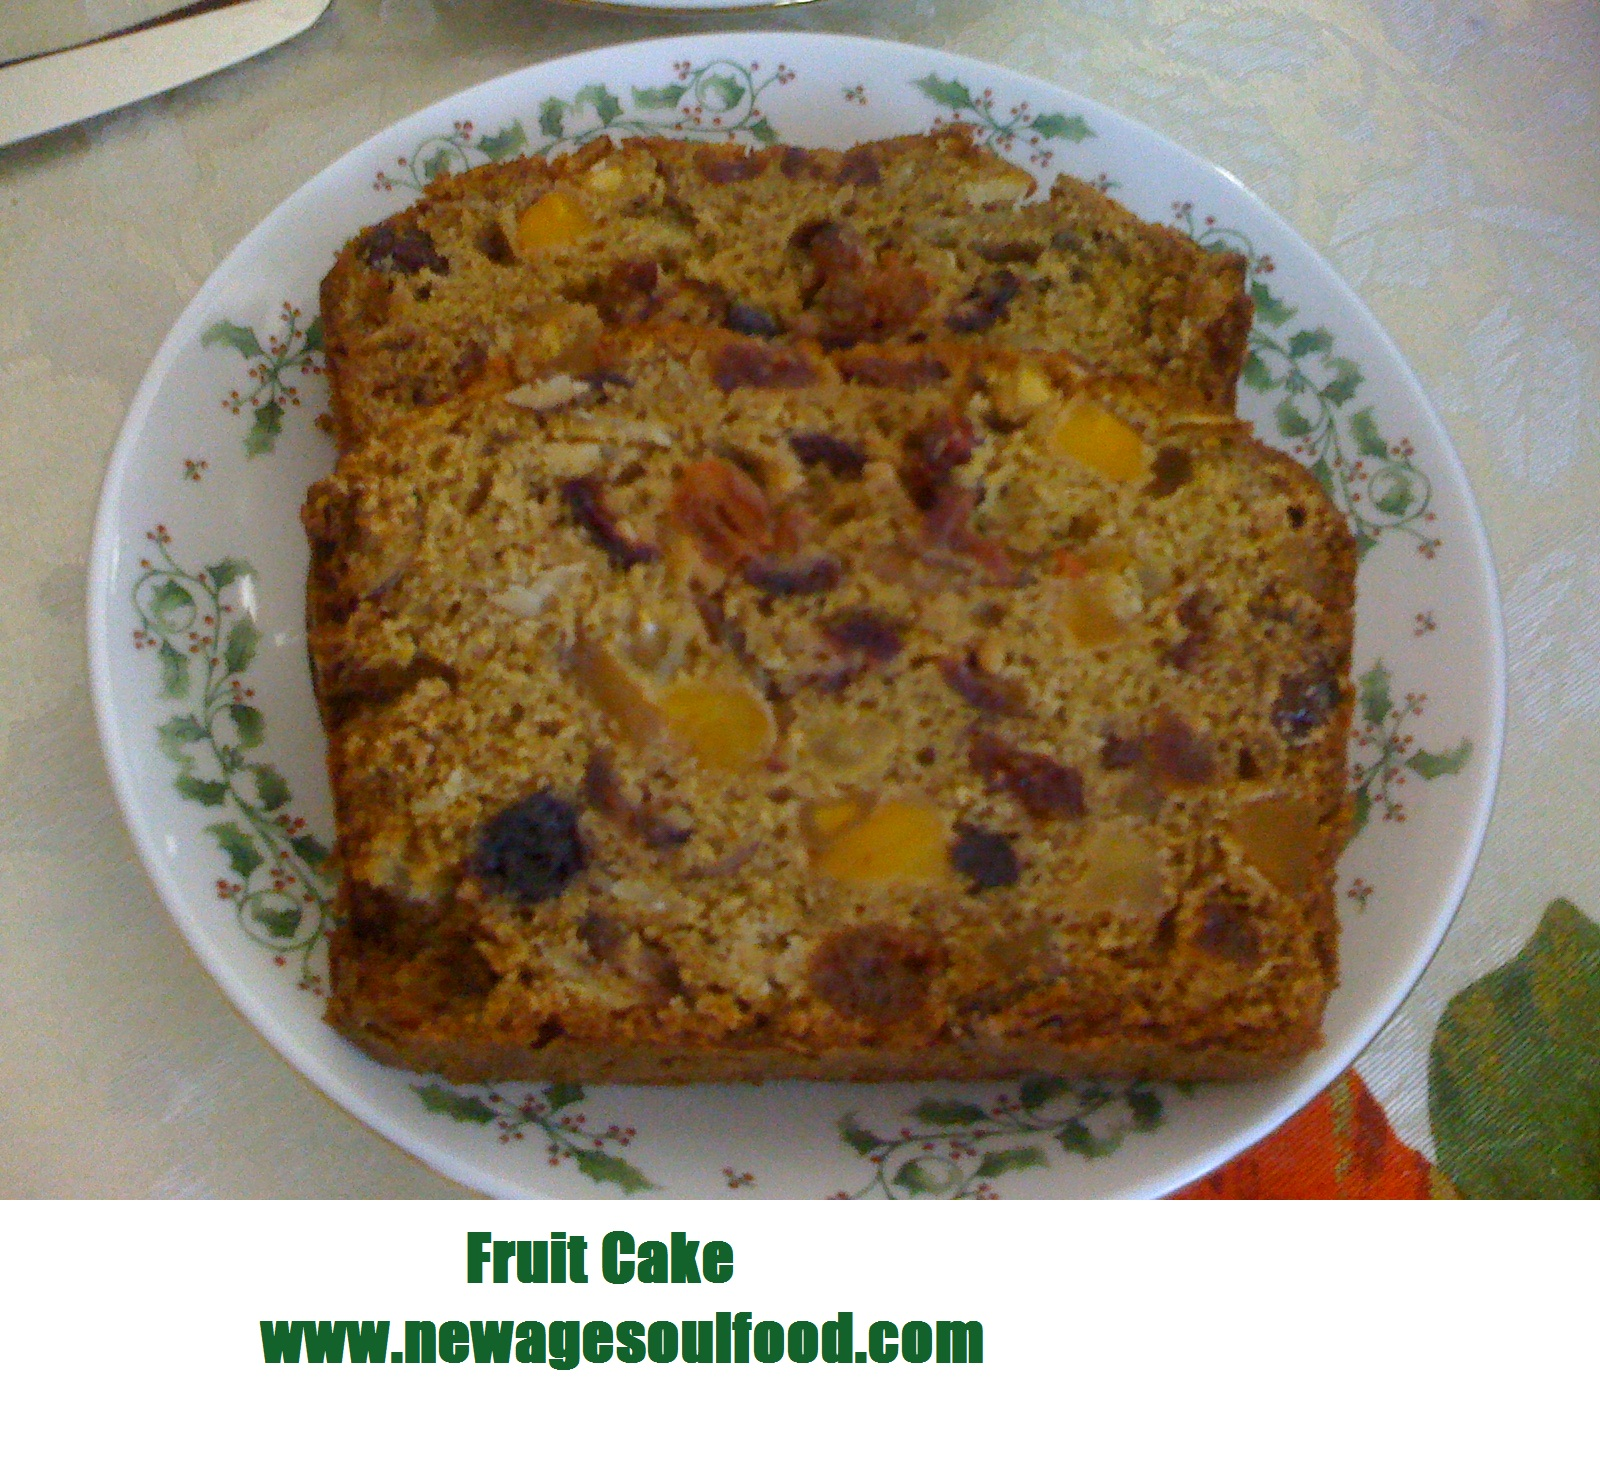 New Age Soul Food: The Fruit Cake Fix